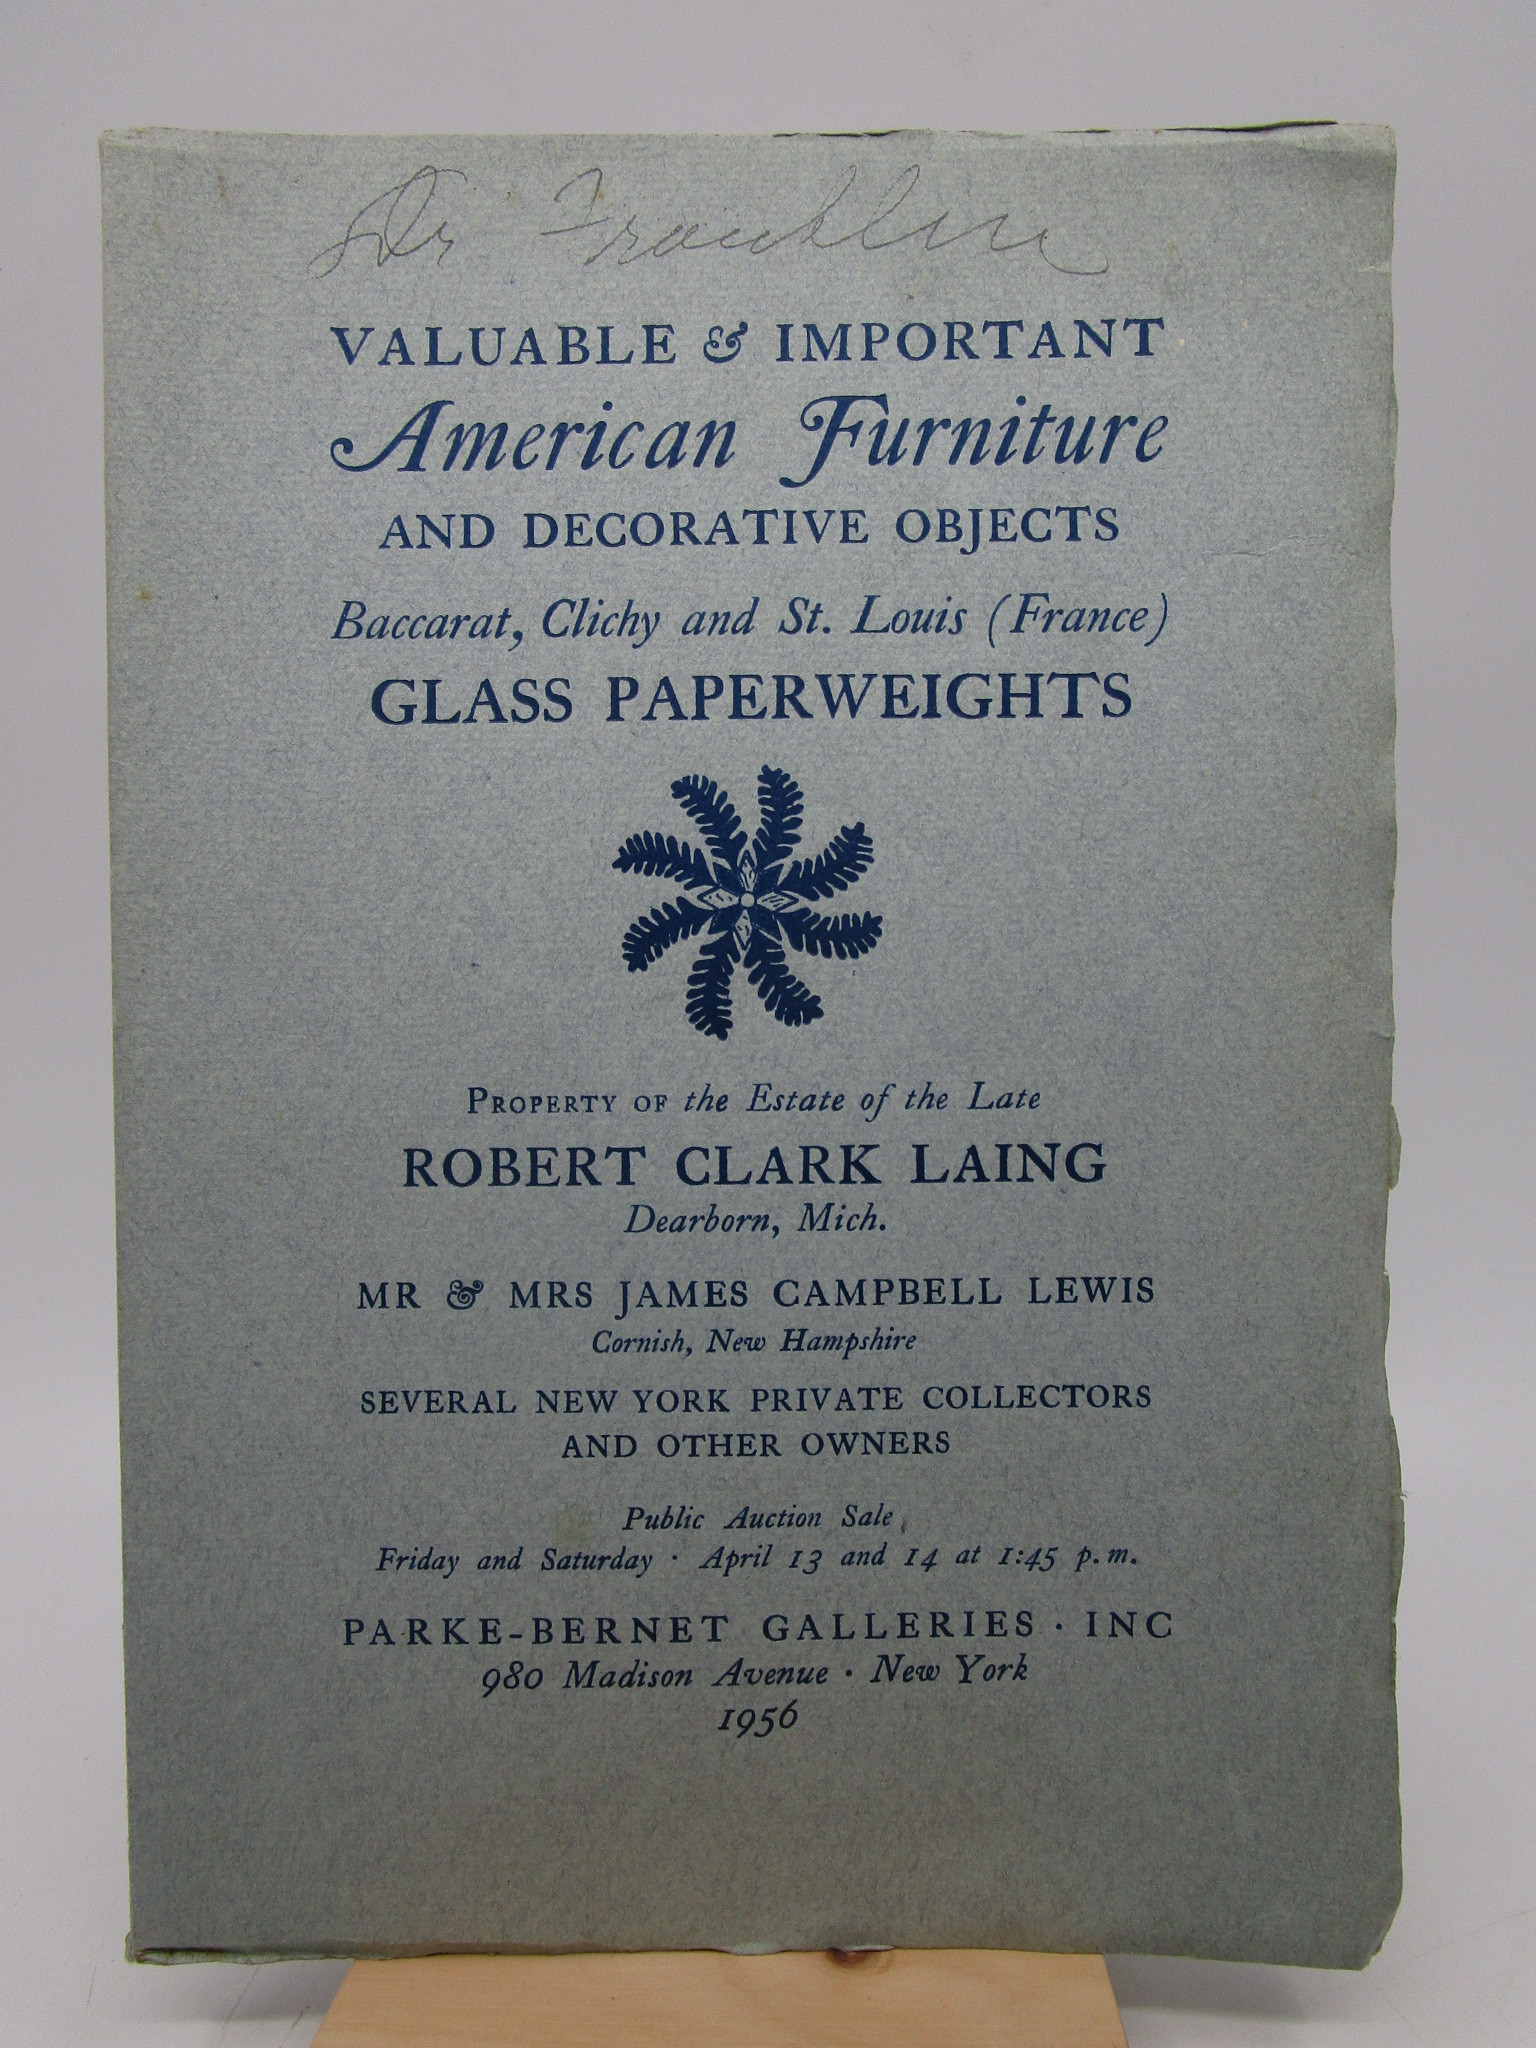 Image for Valuable and Important American Furniture Baccarat, Clichy & St. Louis (France) Glass Paperweights from the Estate of the late Robert Clark Laing